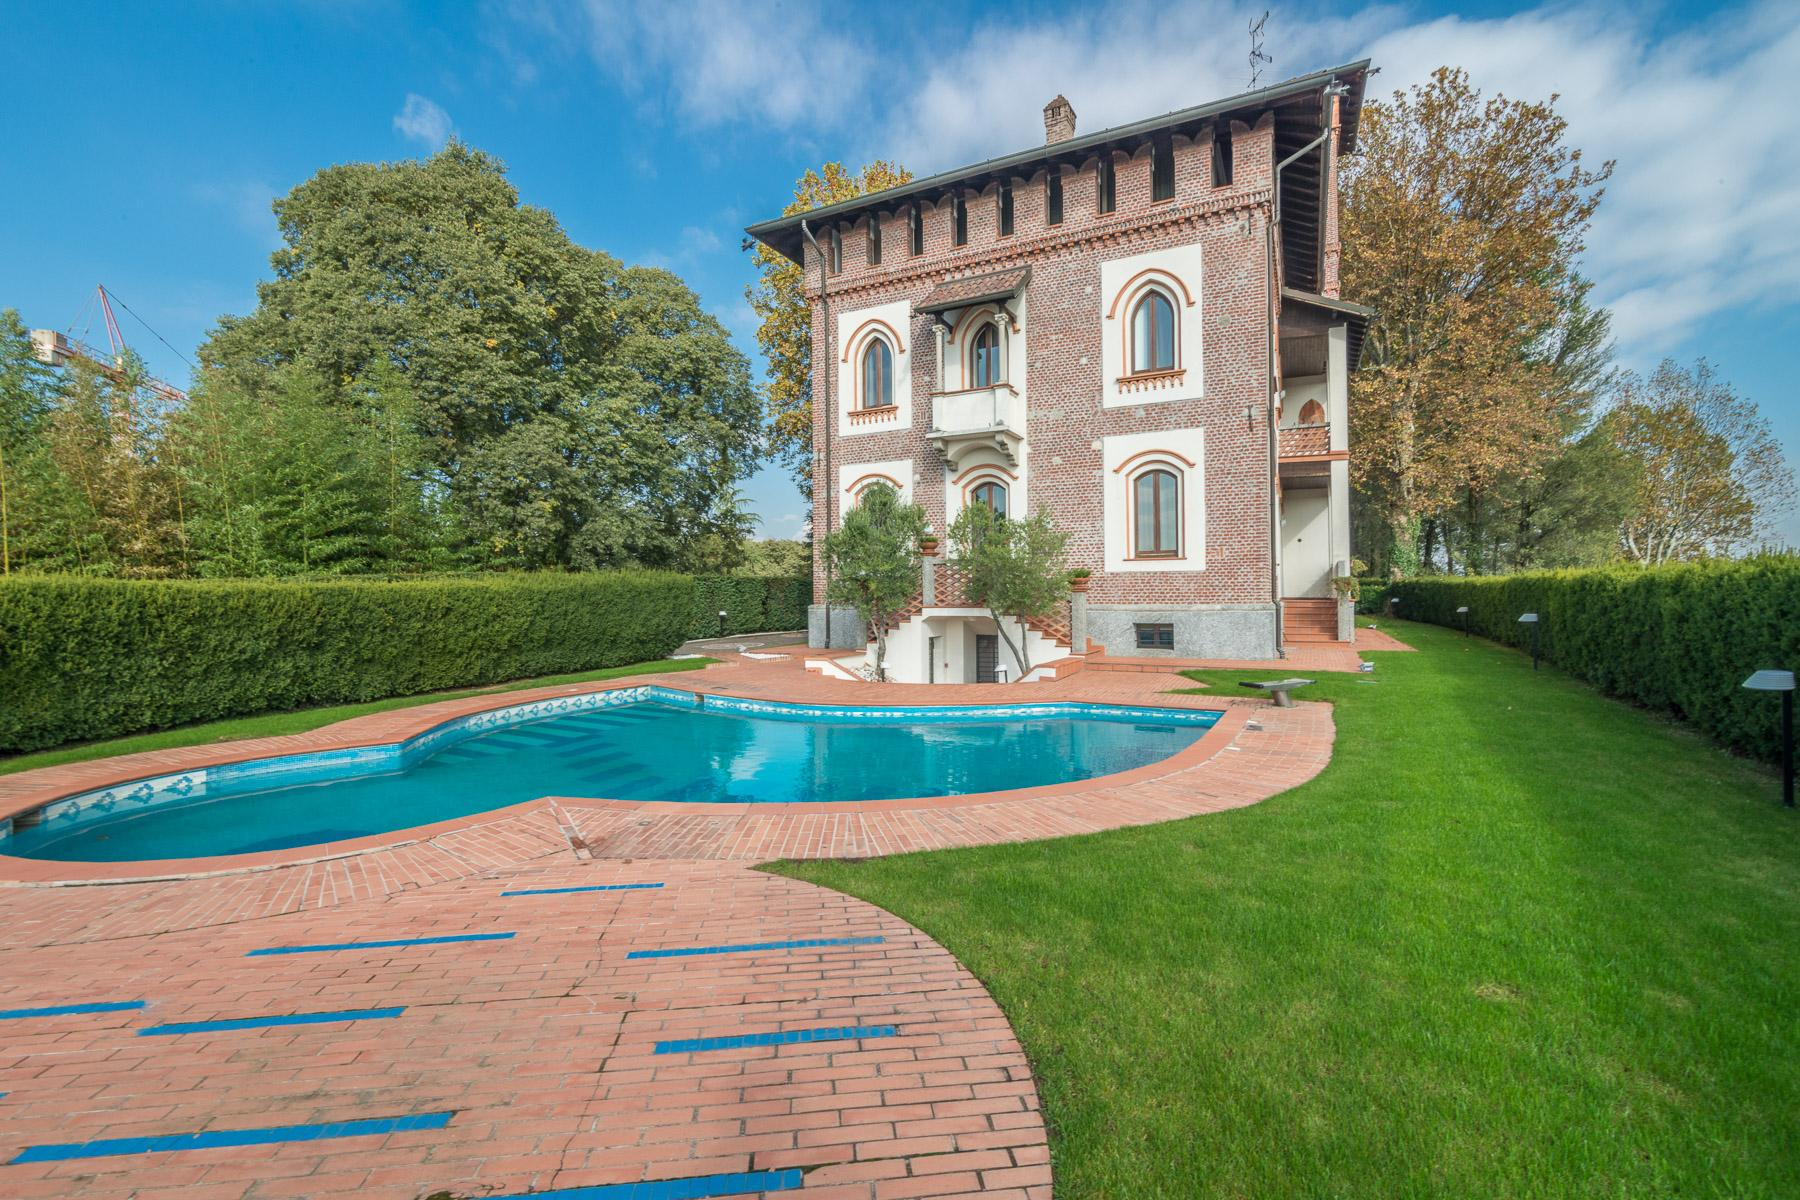 Pretigious historical villa close to Milan - 1